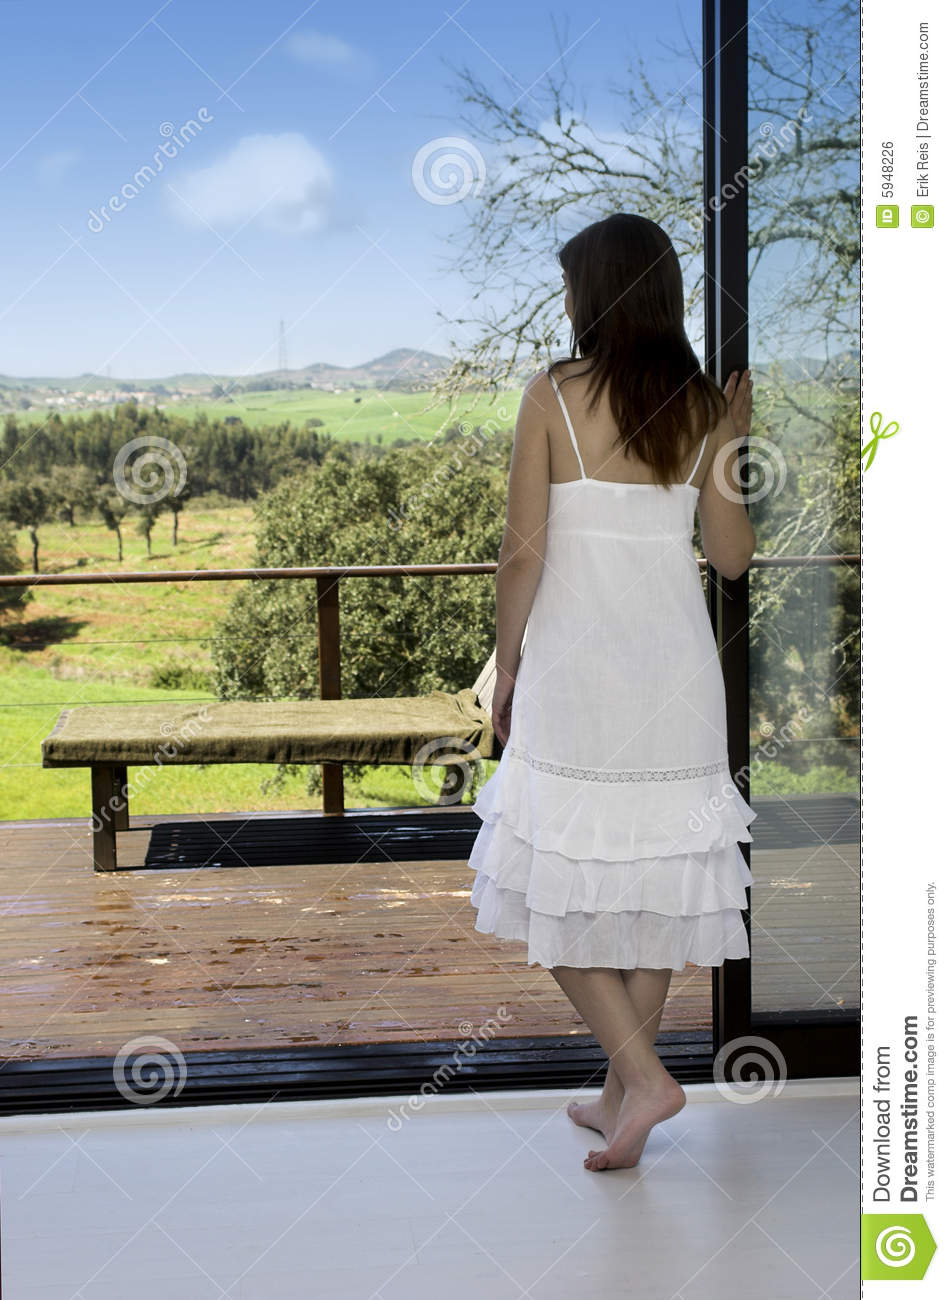 Spring Has Come Stock Photo Image Of Dress Relax Nature 5948226